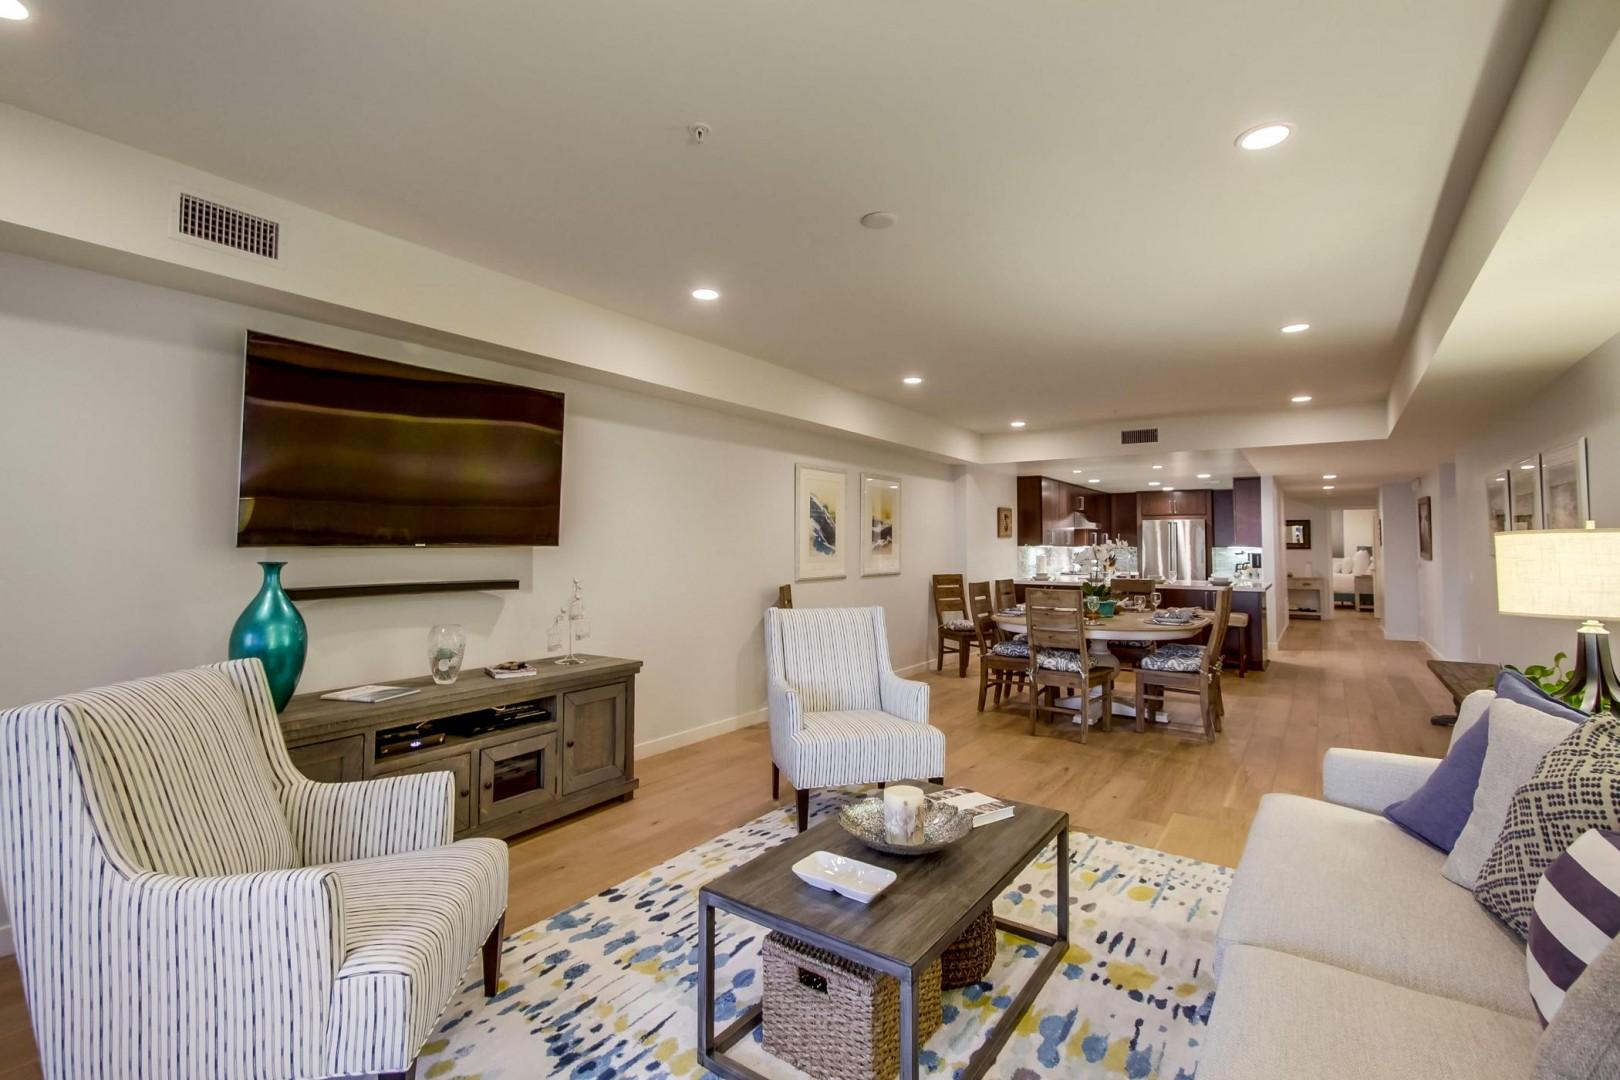 The living room features a flat screen and soffit ceiling with recessed lighting